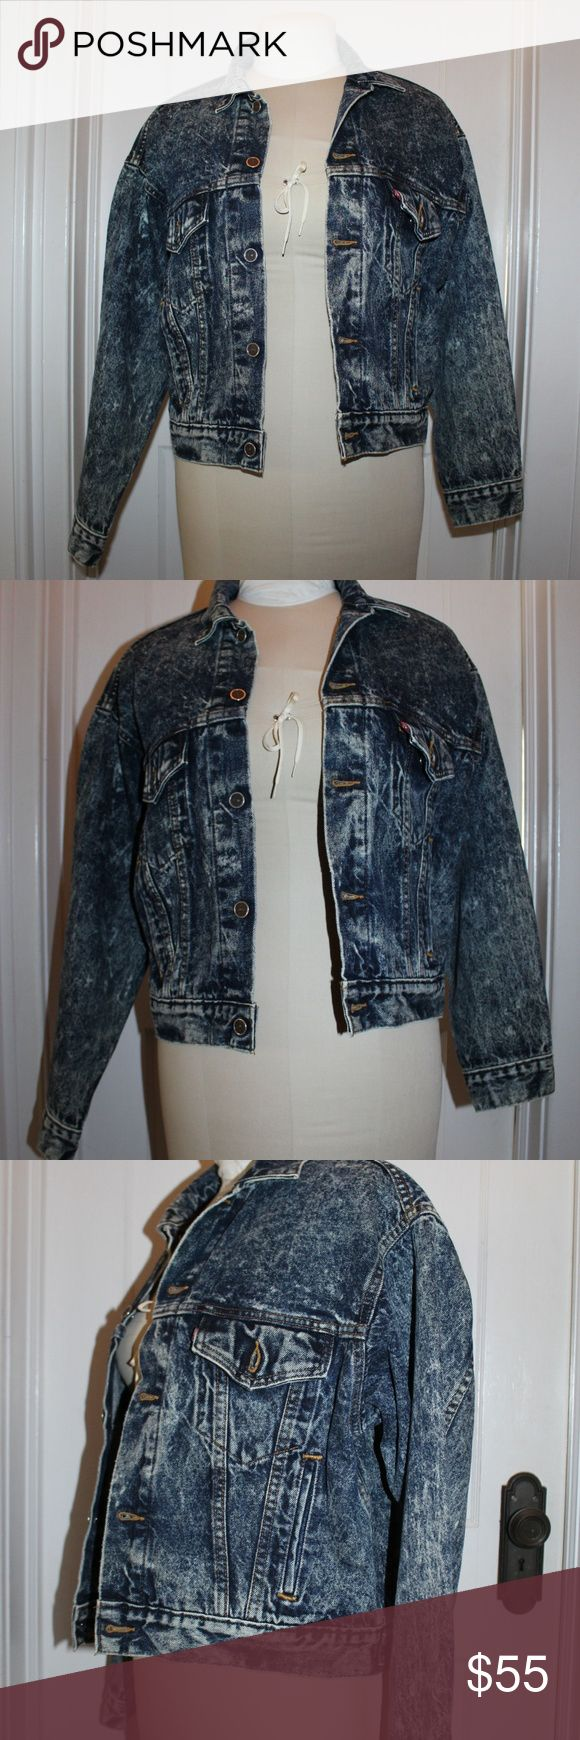 Vintage LEVI'S Acid Wash Mint Medium Denim Jacket This stylish jacket never goes out of style! Made of acid wash denim by the sought after brand Levi's. Perfect for fashionistas!  MAKER: LEVI'S  MARKINGS: LEVI'S MATERIAL: Denim COLOR: Acid Wash DIMENSION: Ladies Medium ERA: 1950s Levi's Jackets & Coats Jean Jackets